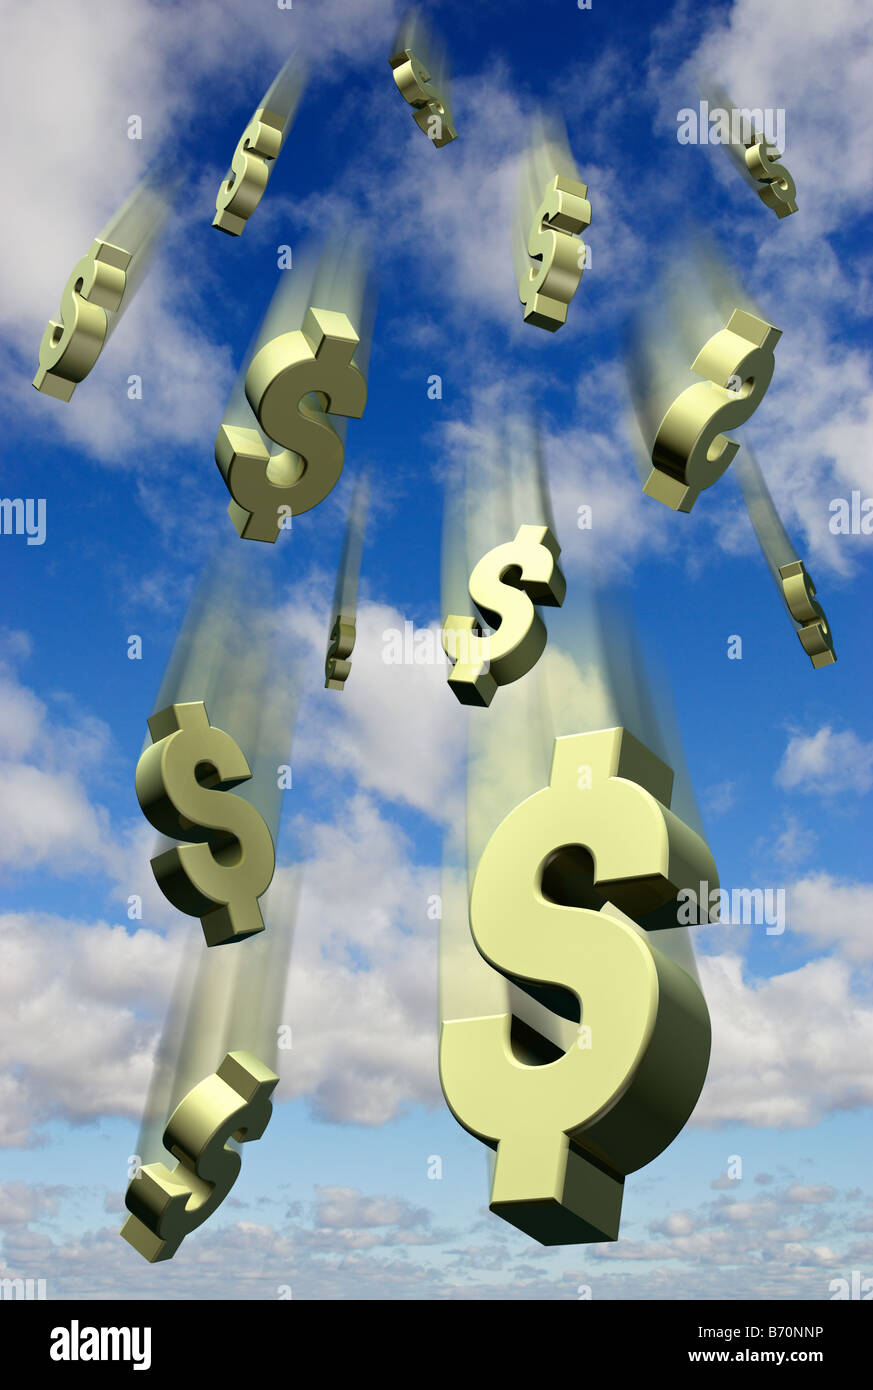 Falling US Dollar symbols against a blue sky - digital composite - Stock Image